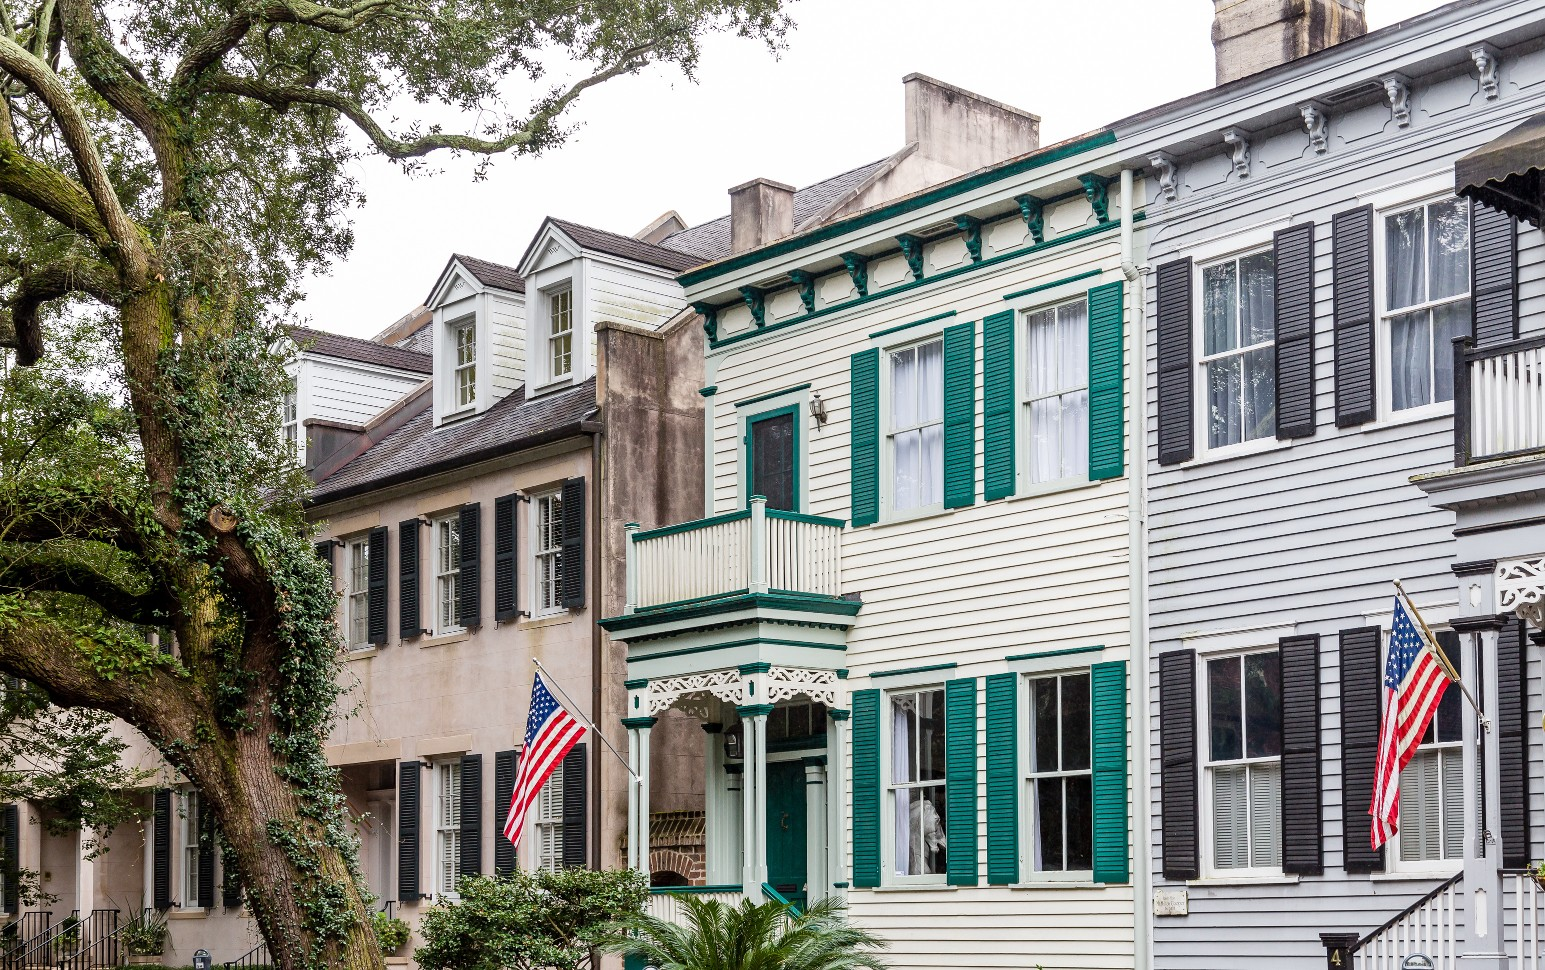 historic charleston home with green shutters and American flag